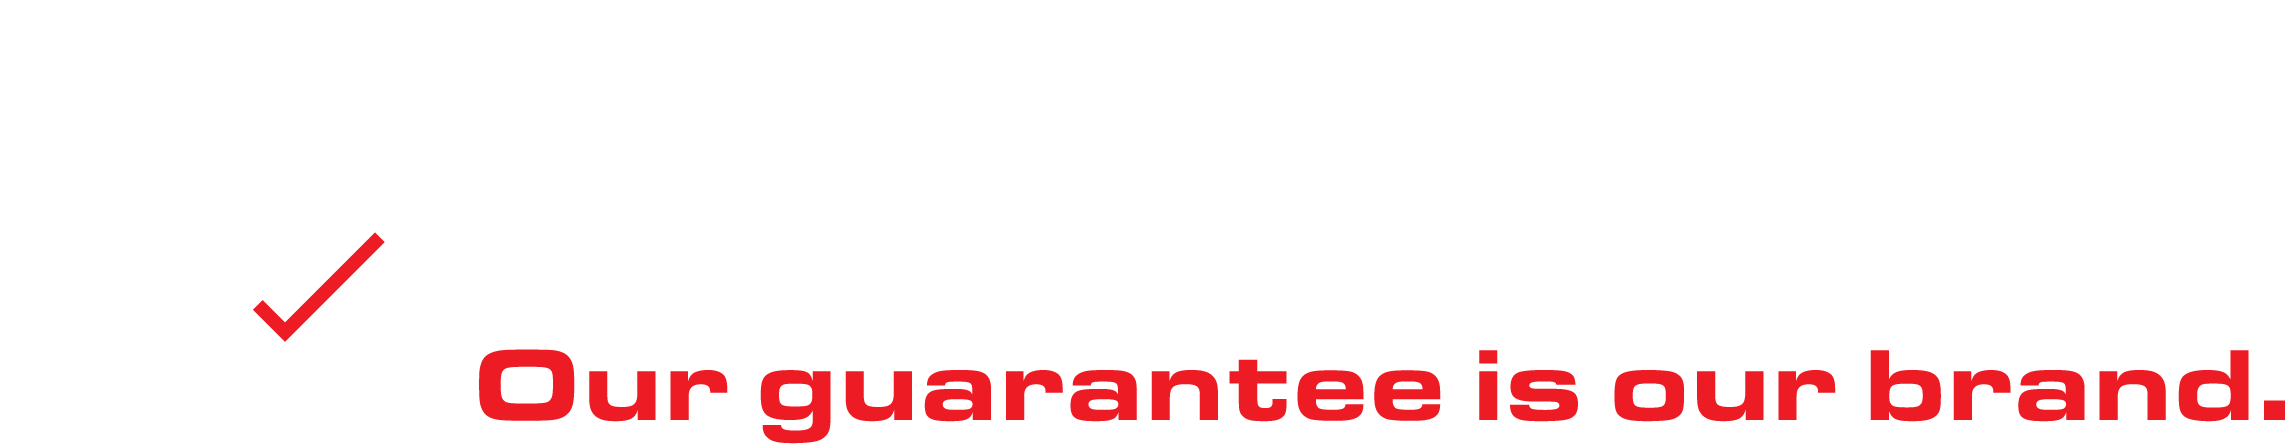 Warranty-registration